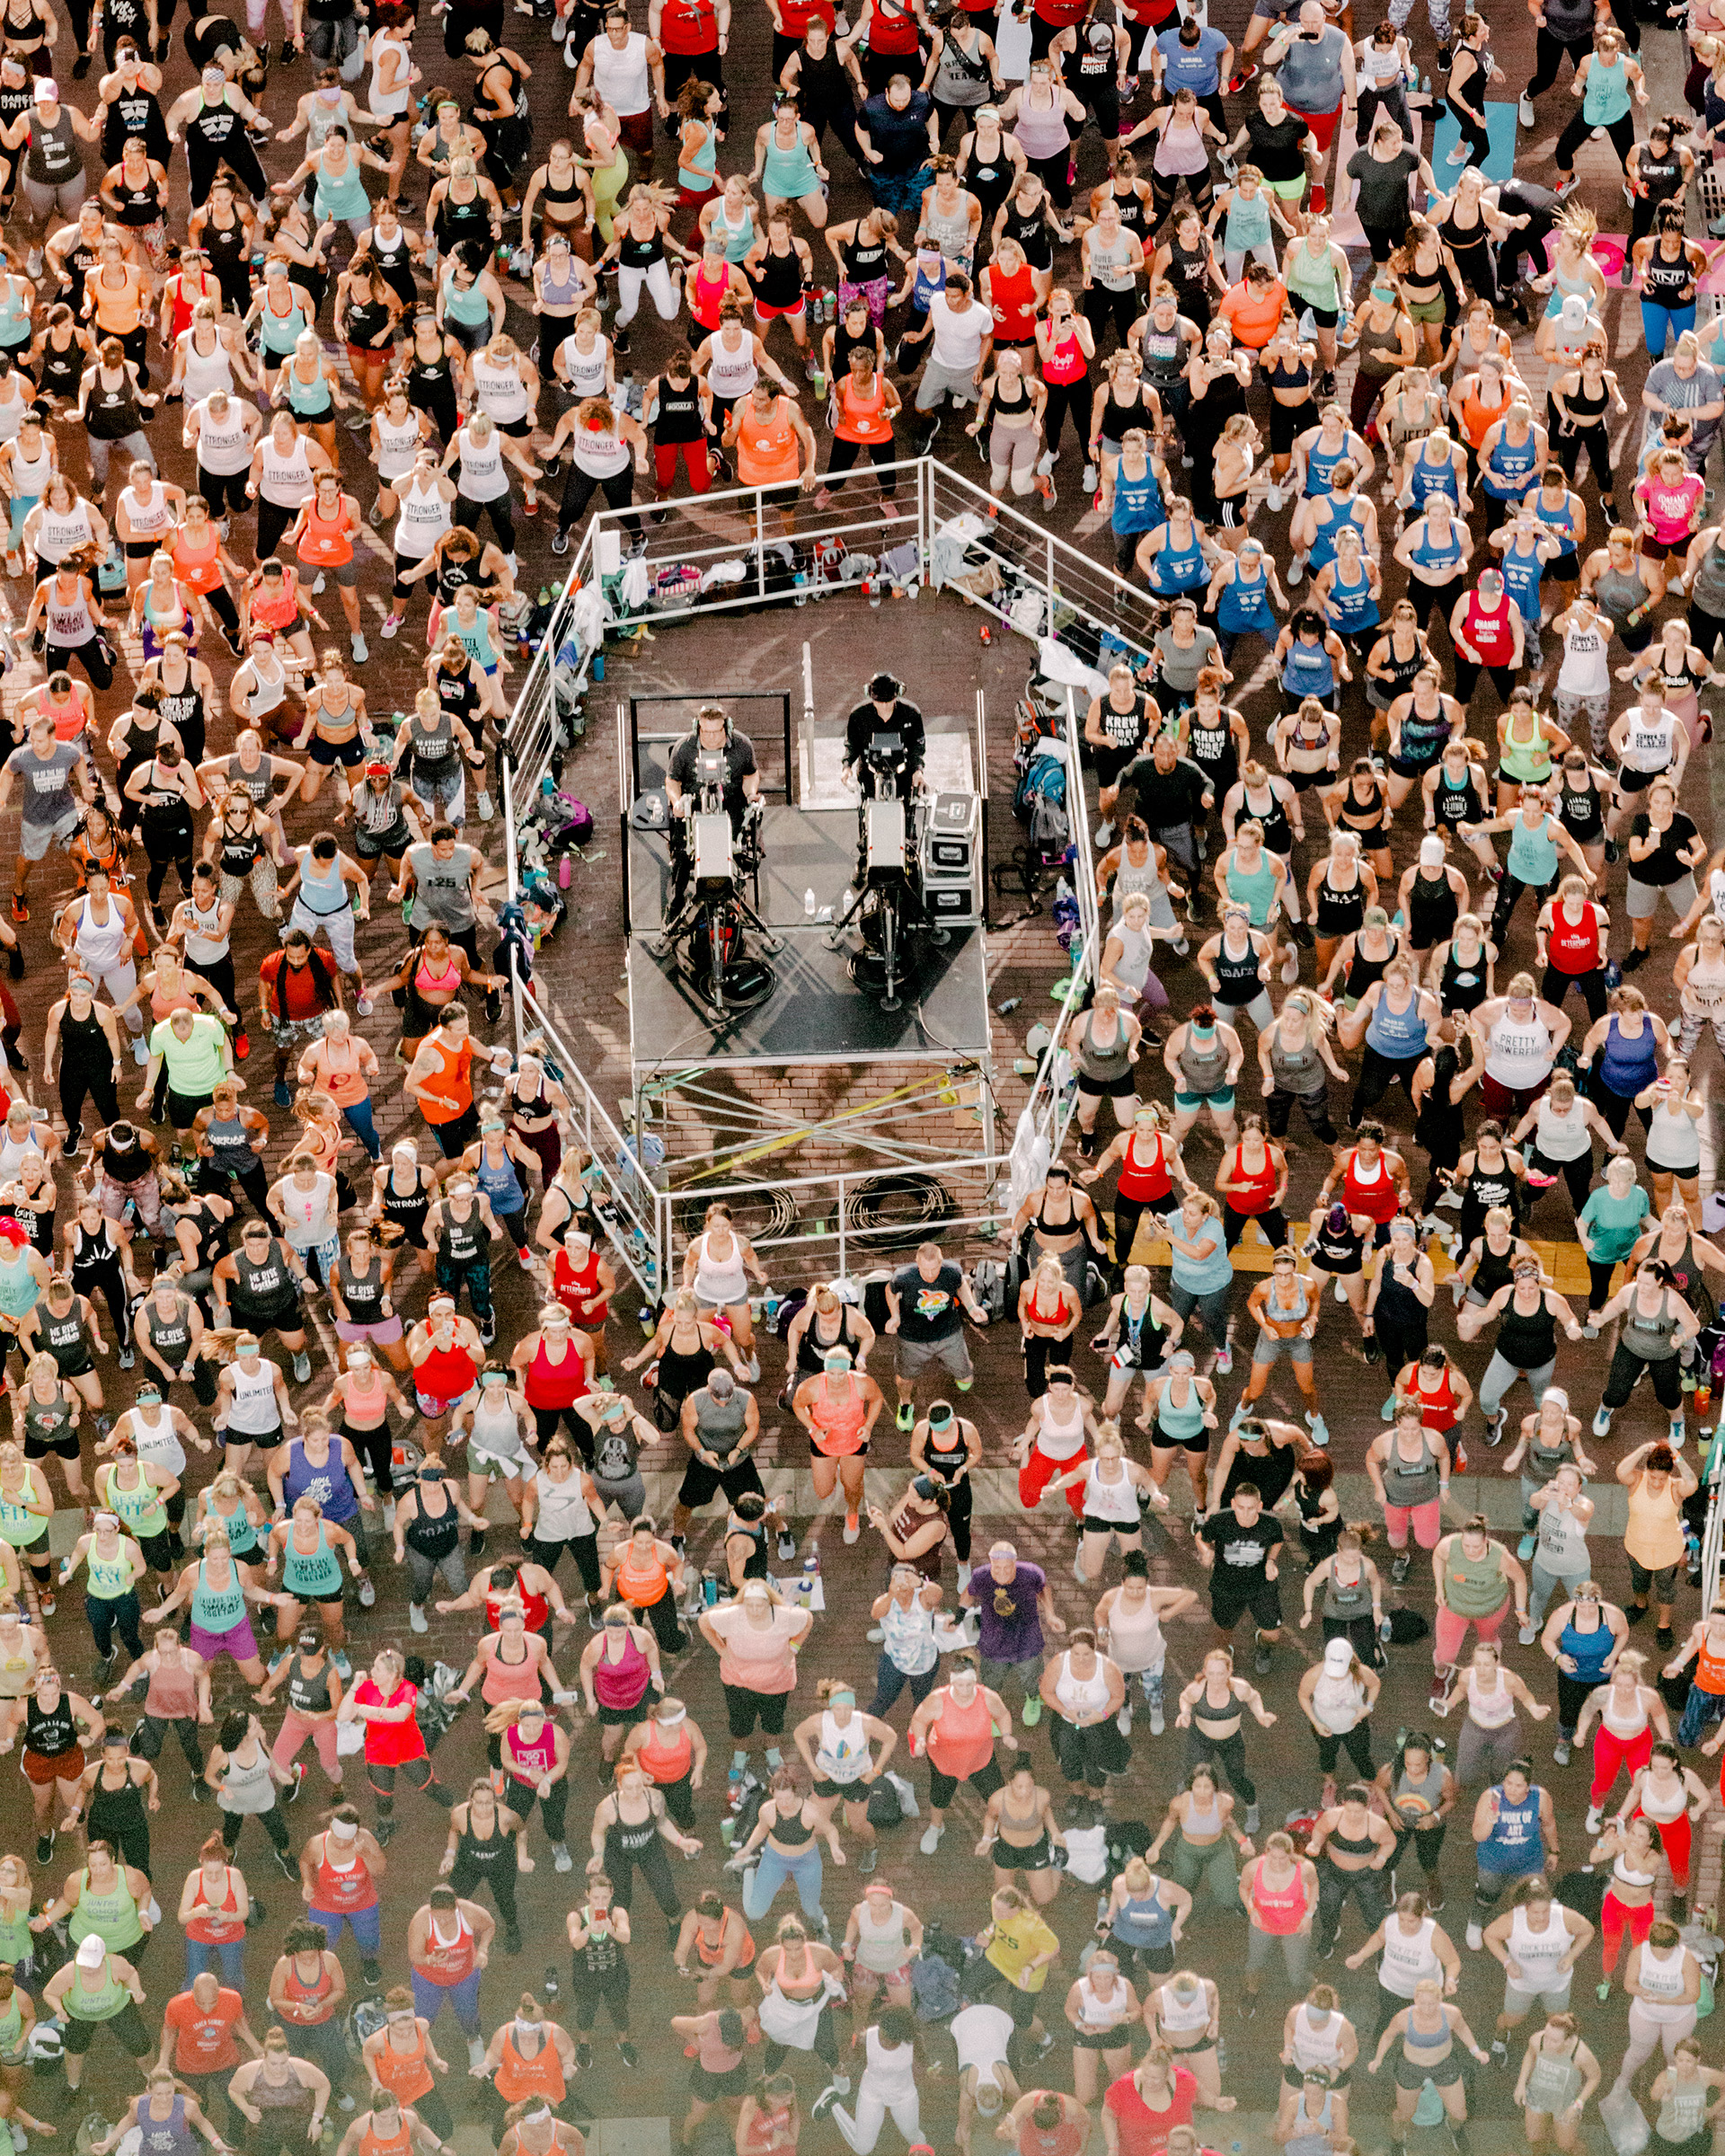 The Beachbody summit in 2019 drew thousands hoping to earn money selling the company's products and fitness routines